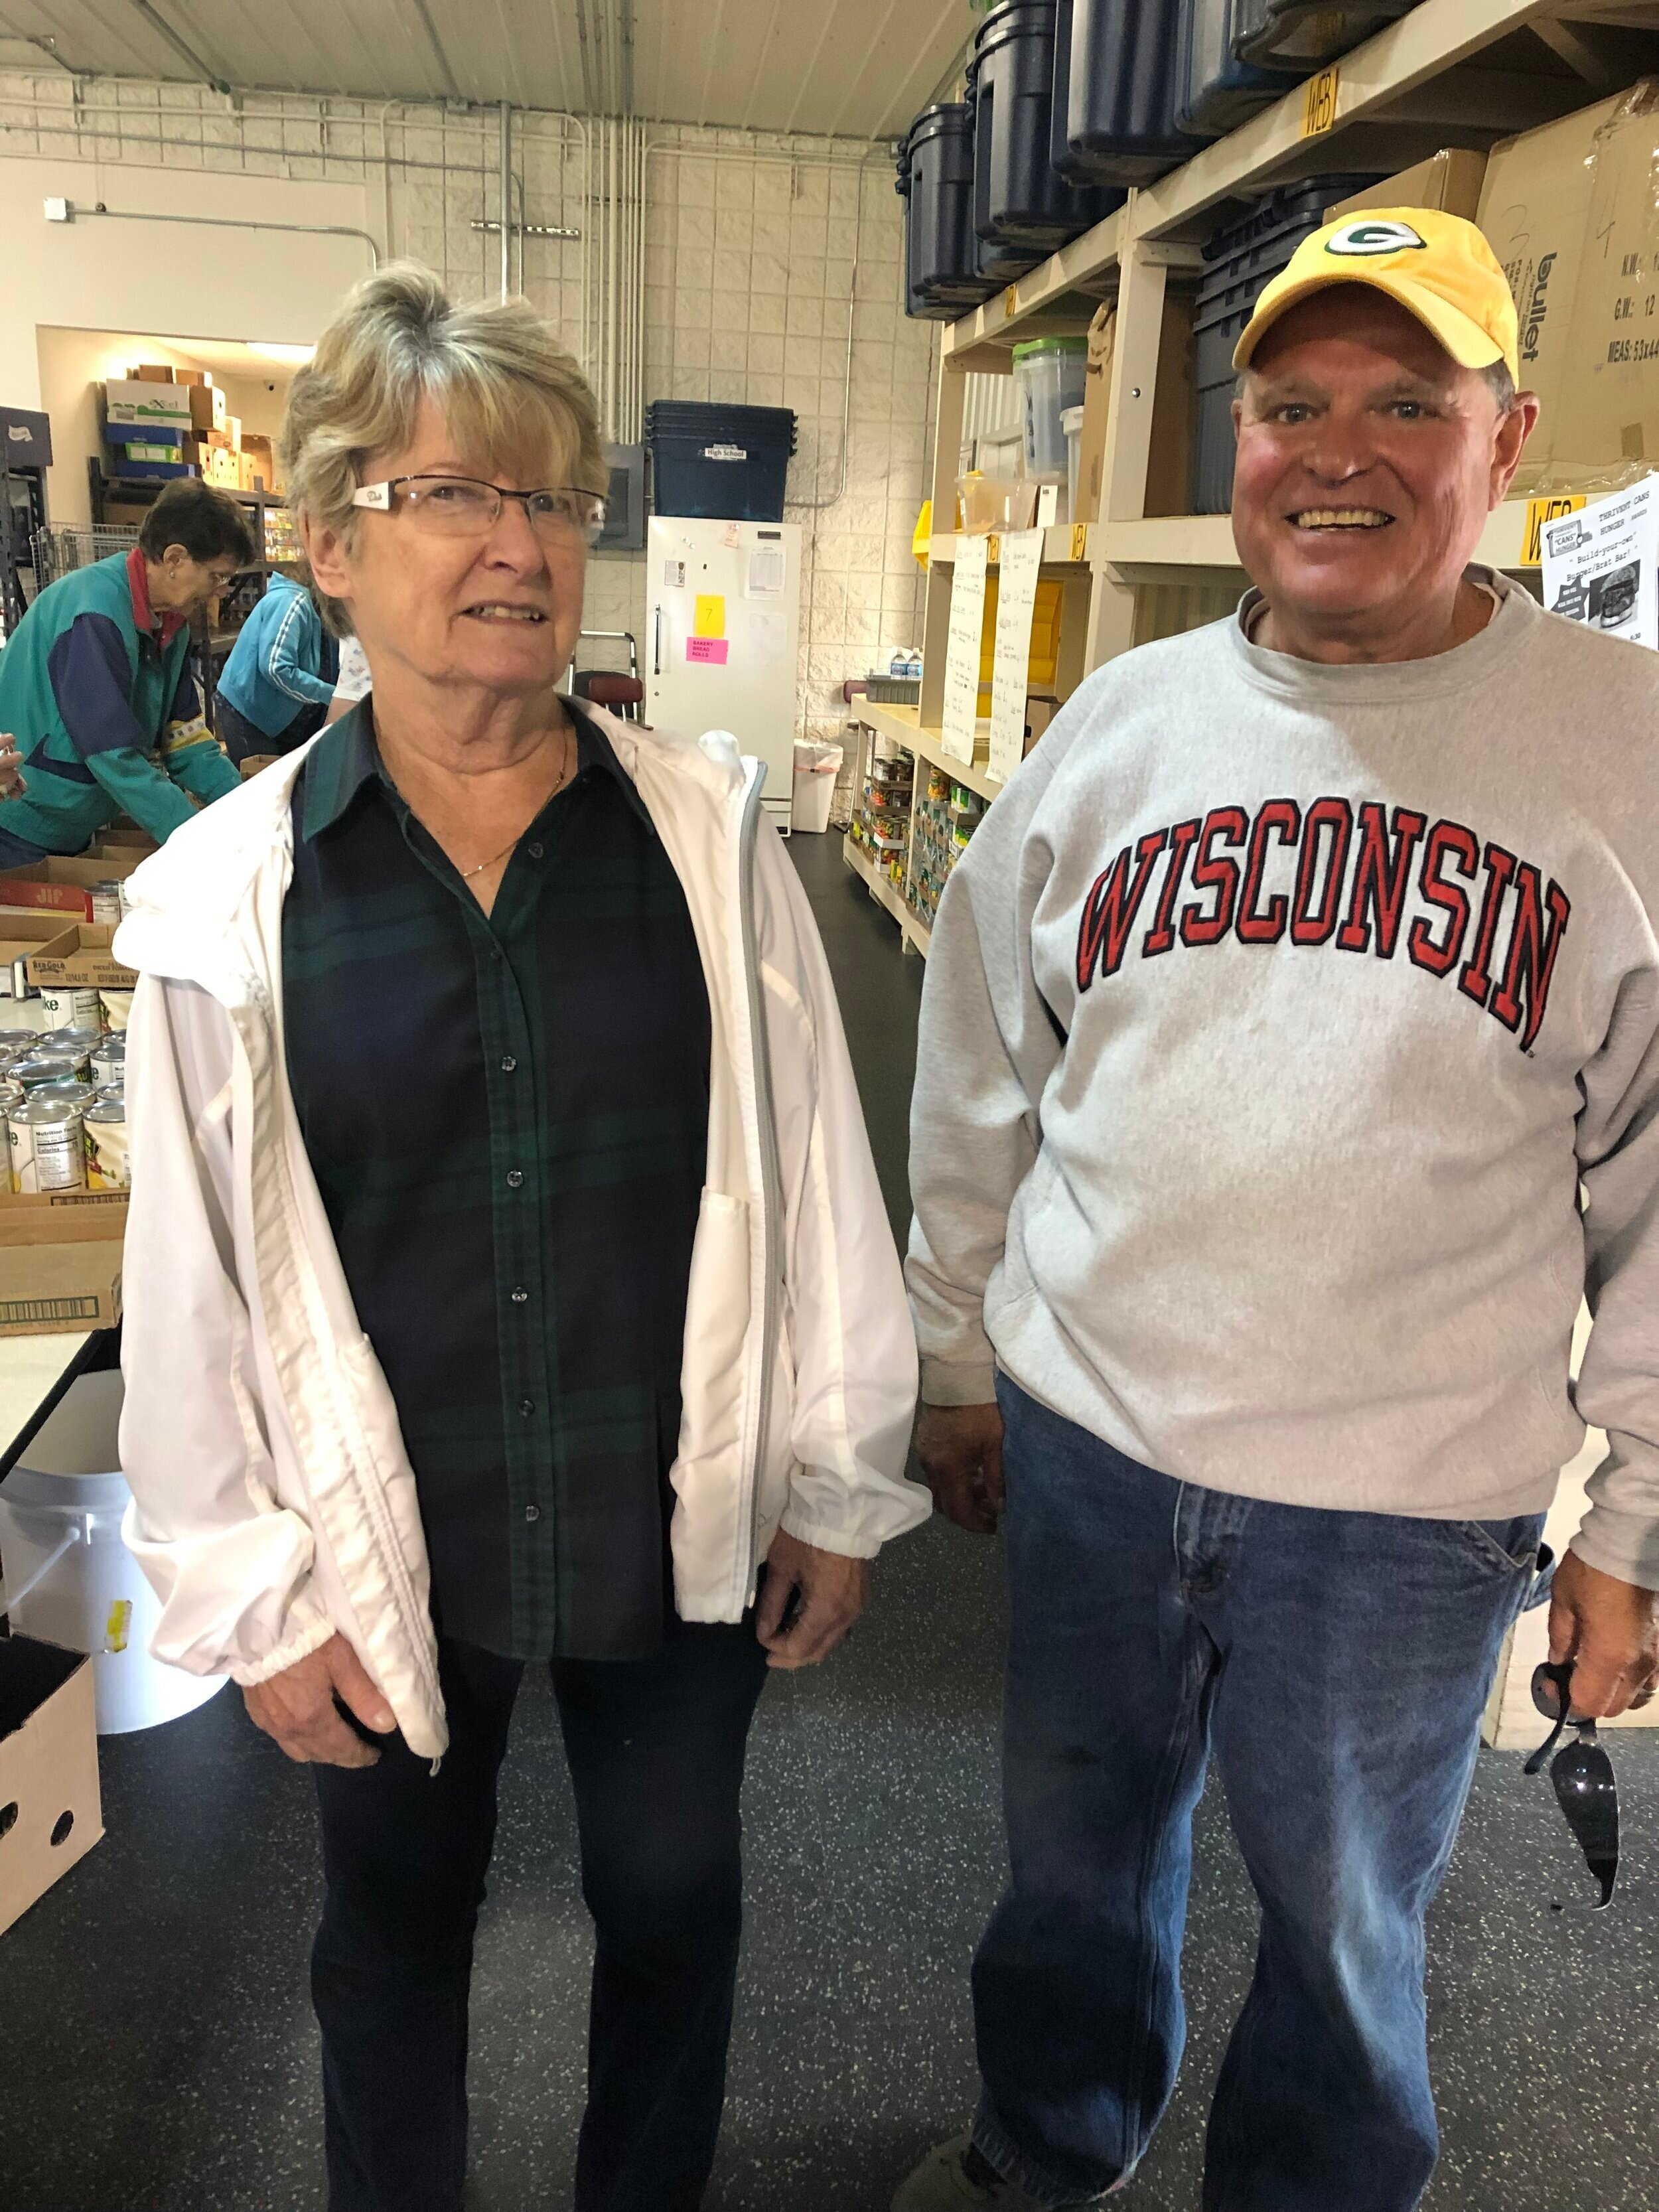 Thank you volunteers! - You make the Pantry great!